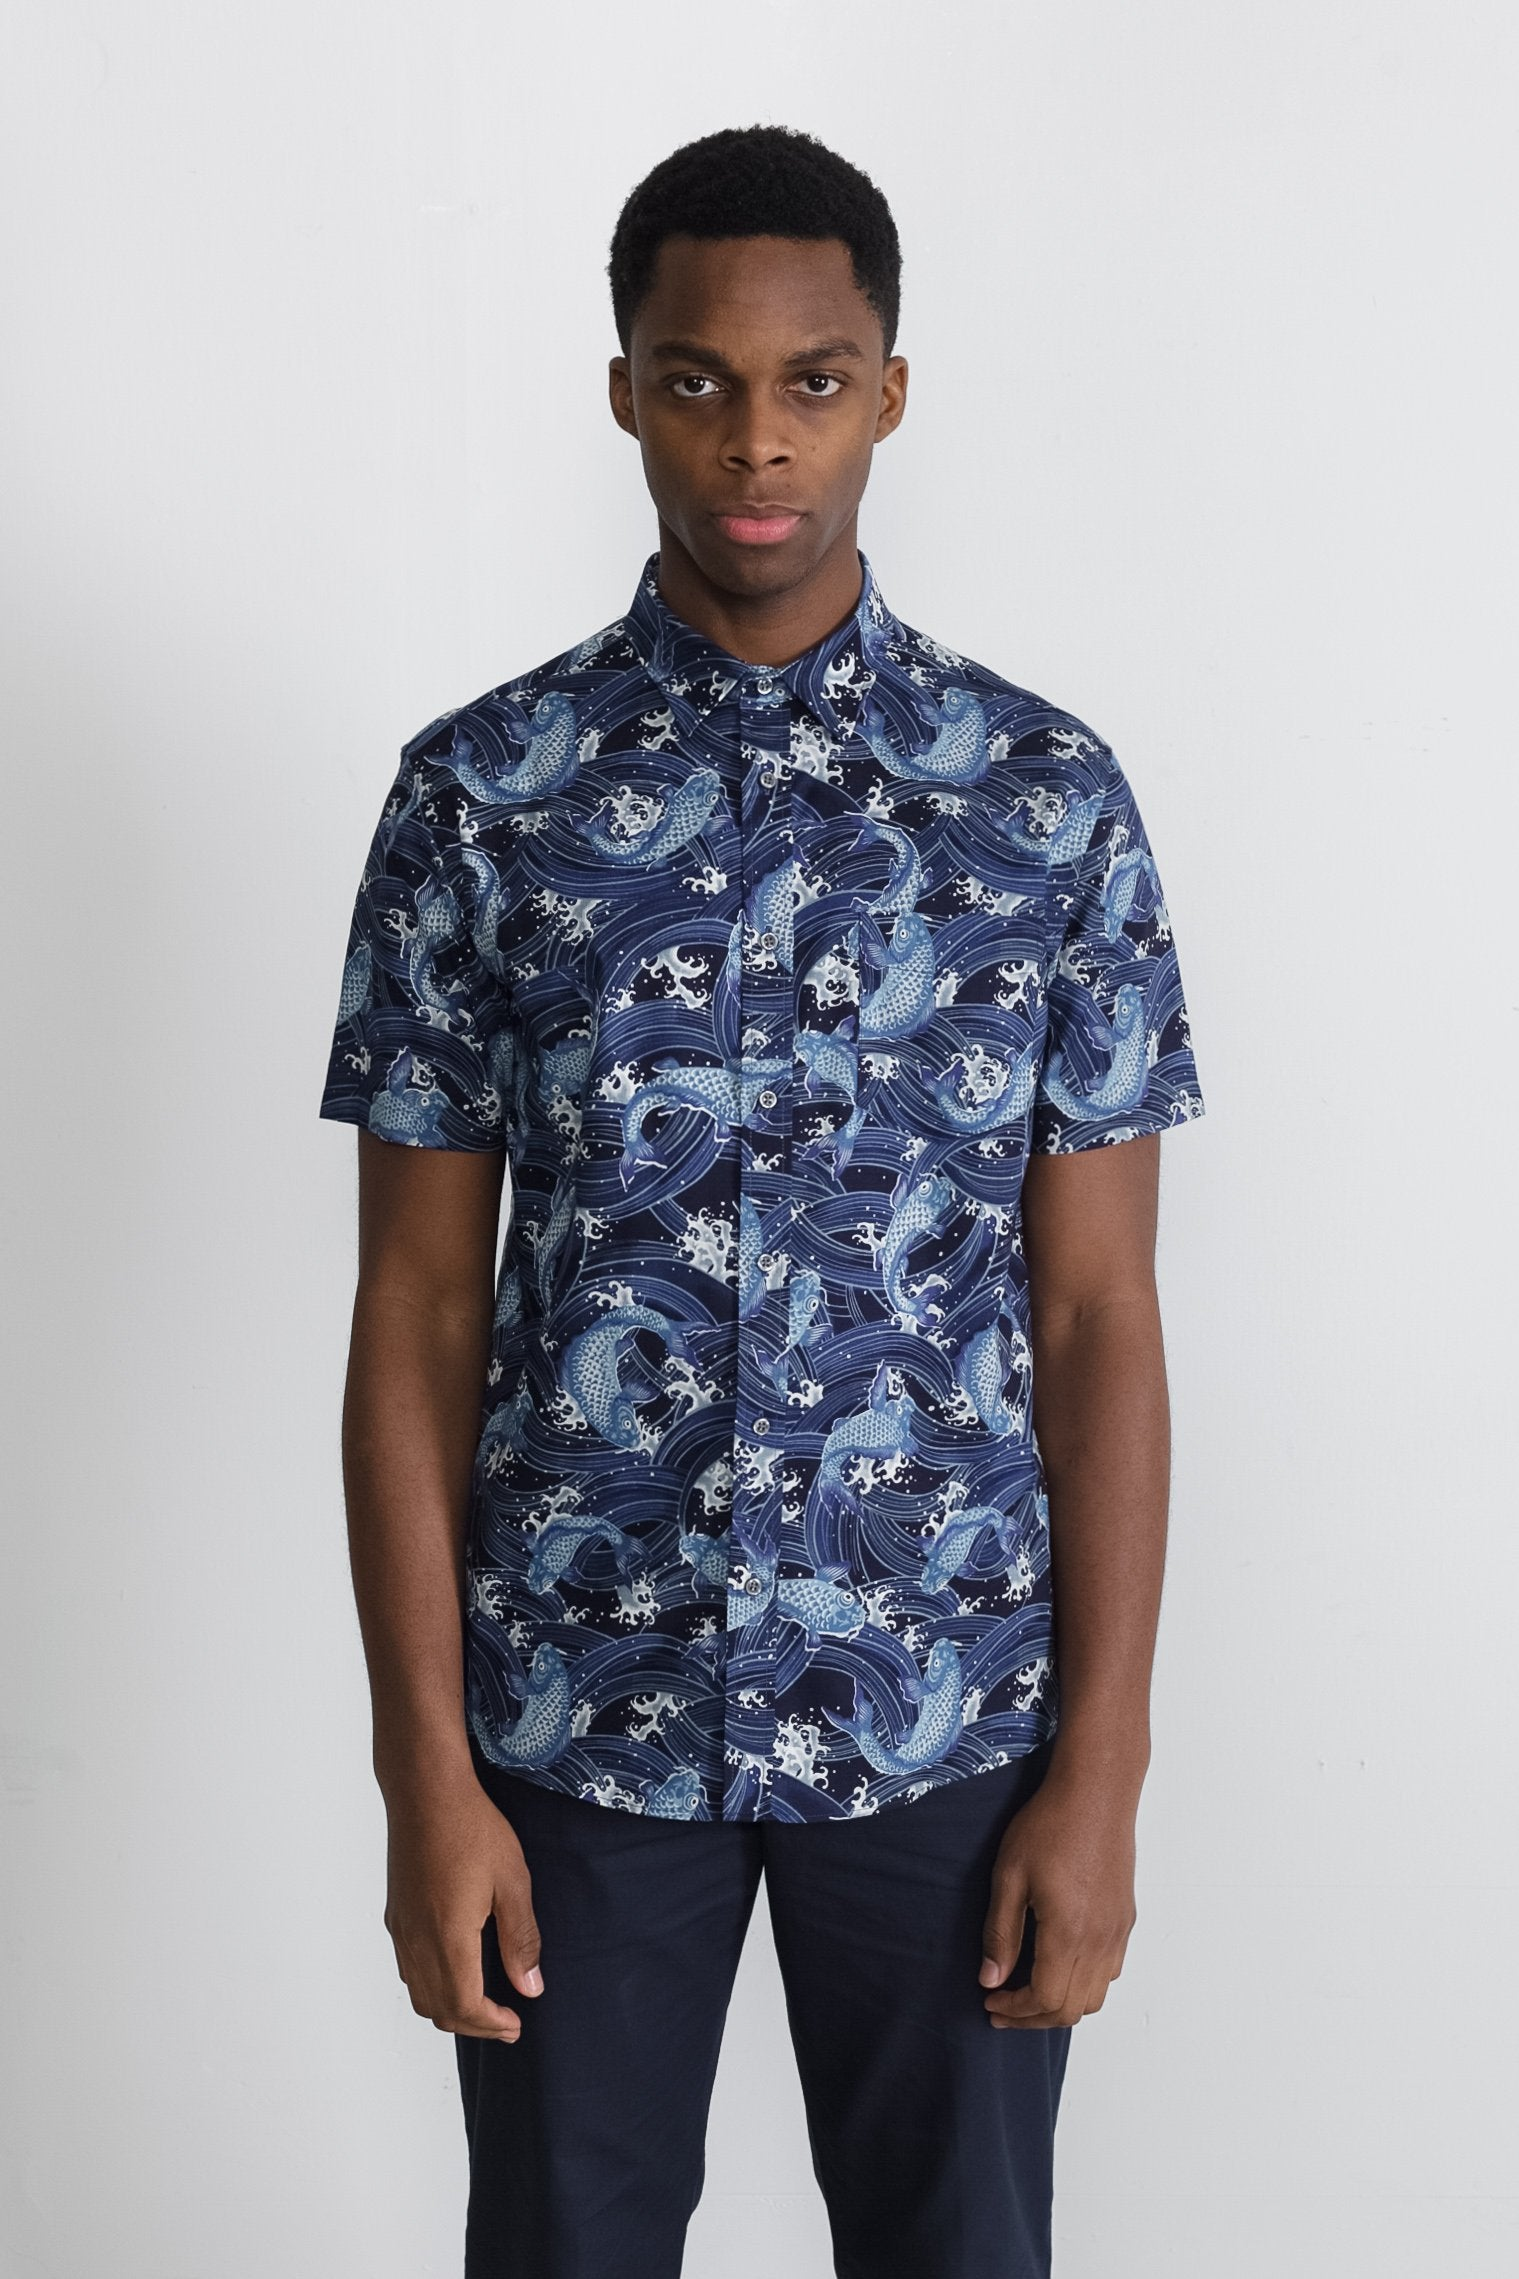 Japanese Koi Print in Navy 001